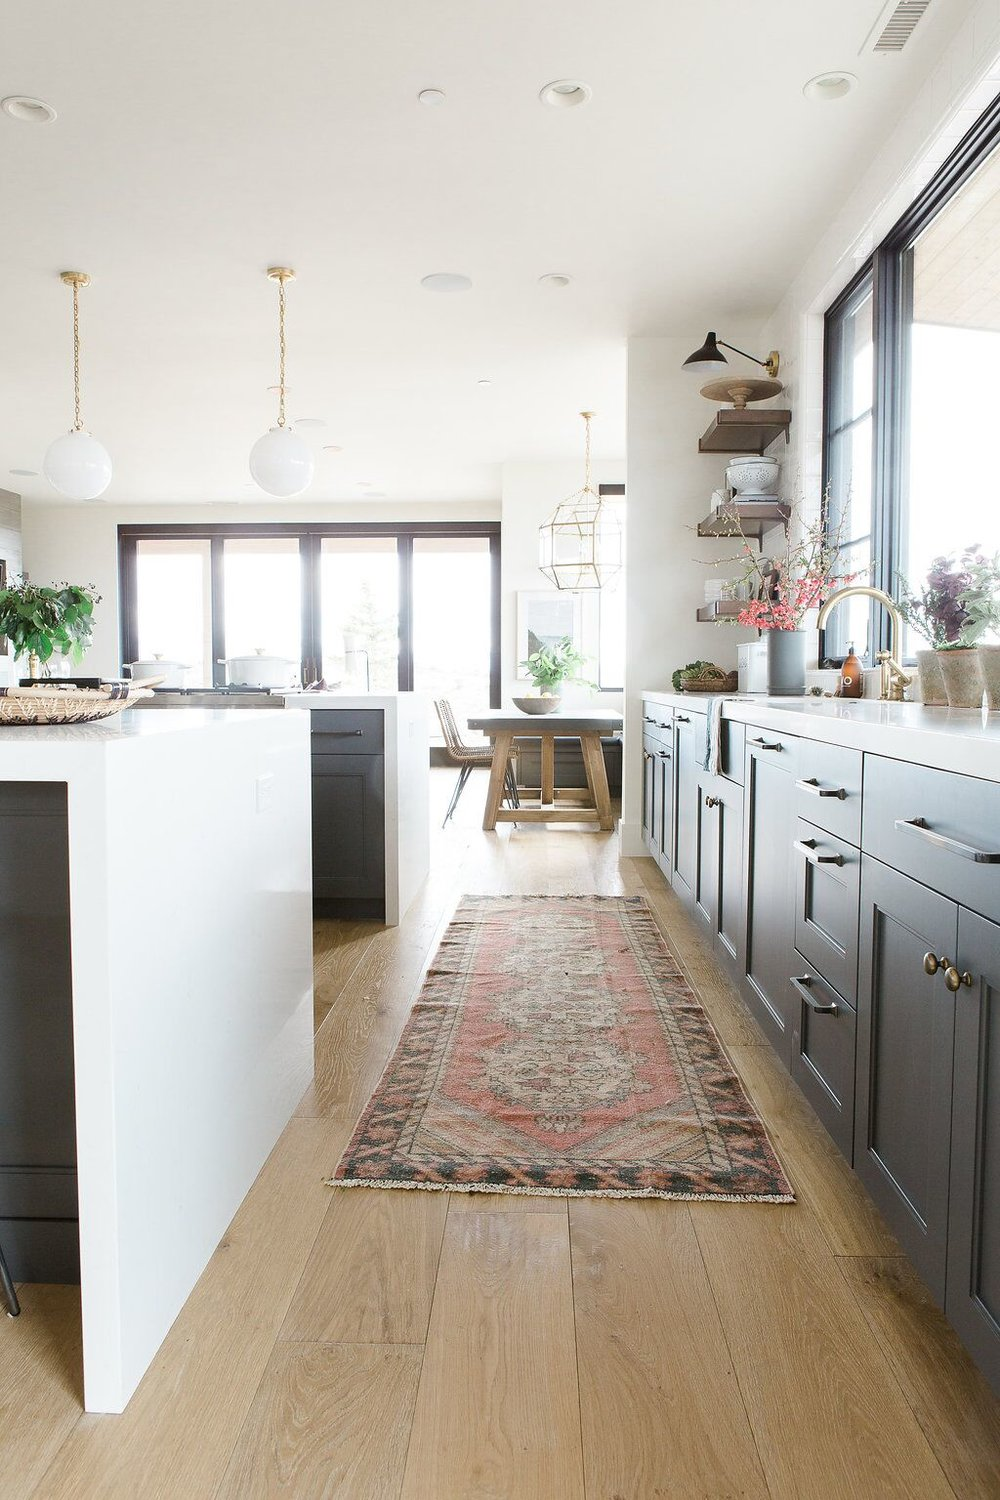 Modern kitchen with deep walnut open shelves, vintage rug and white waterfall edged countertops